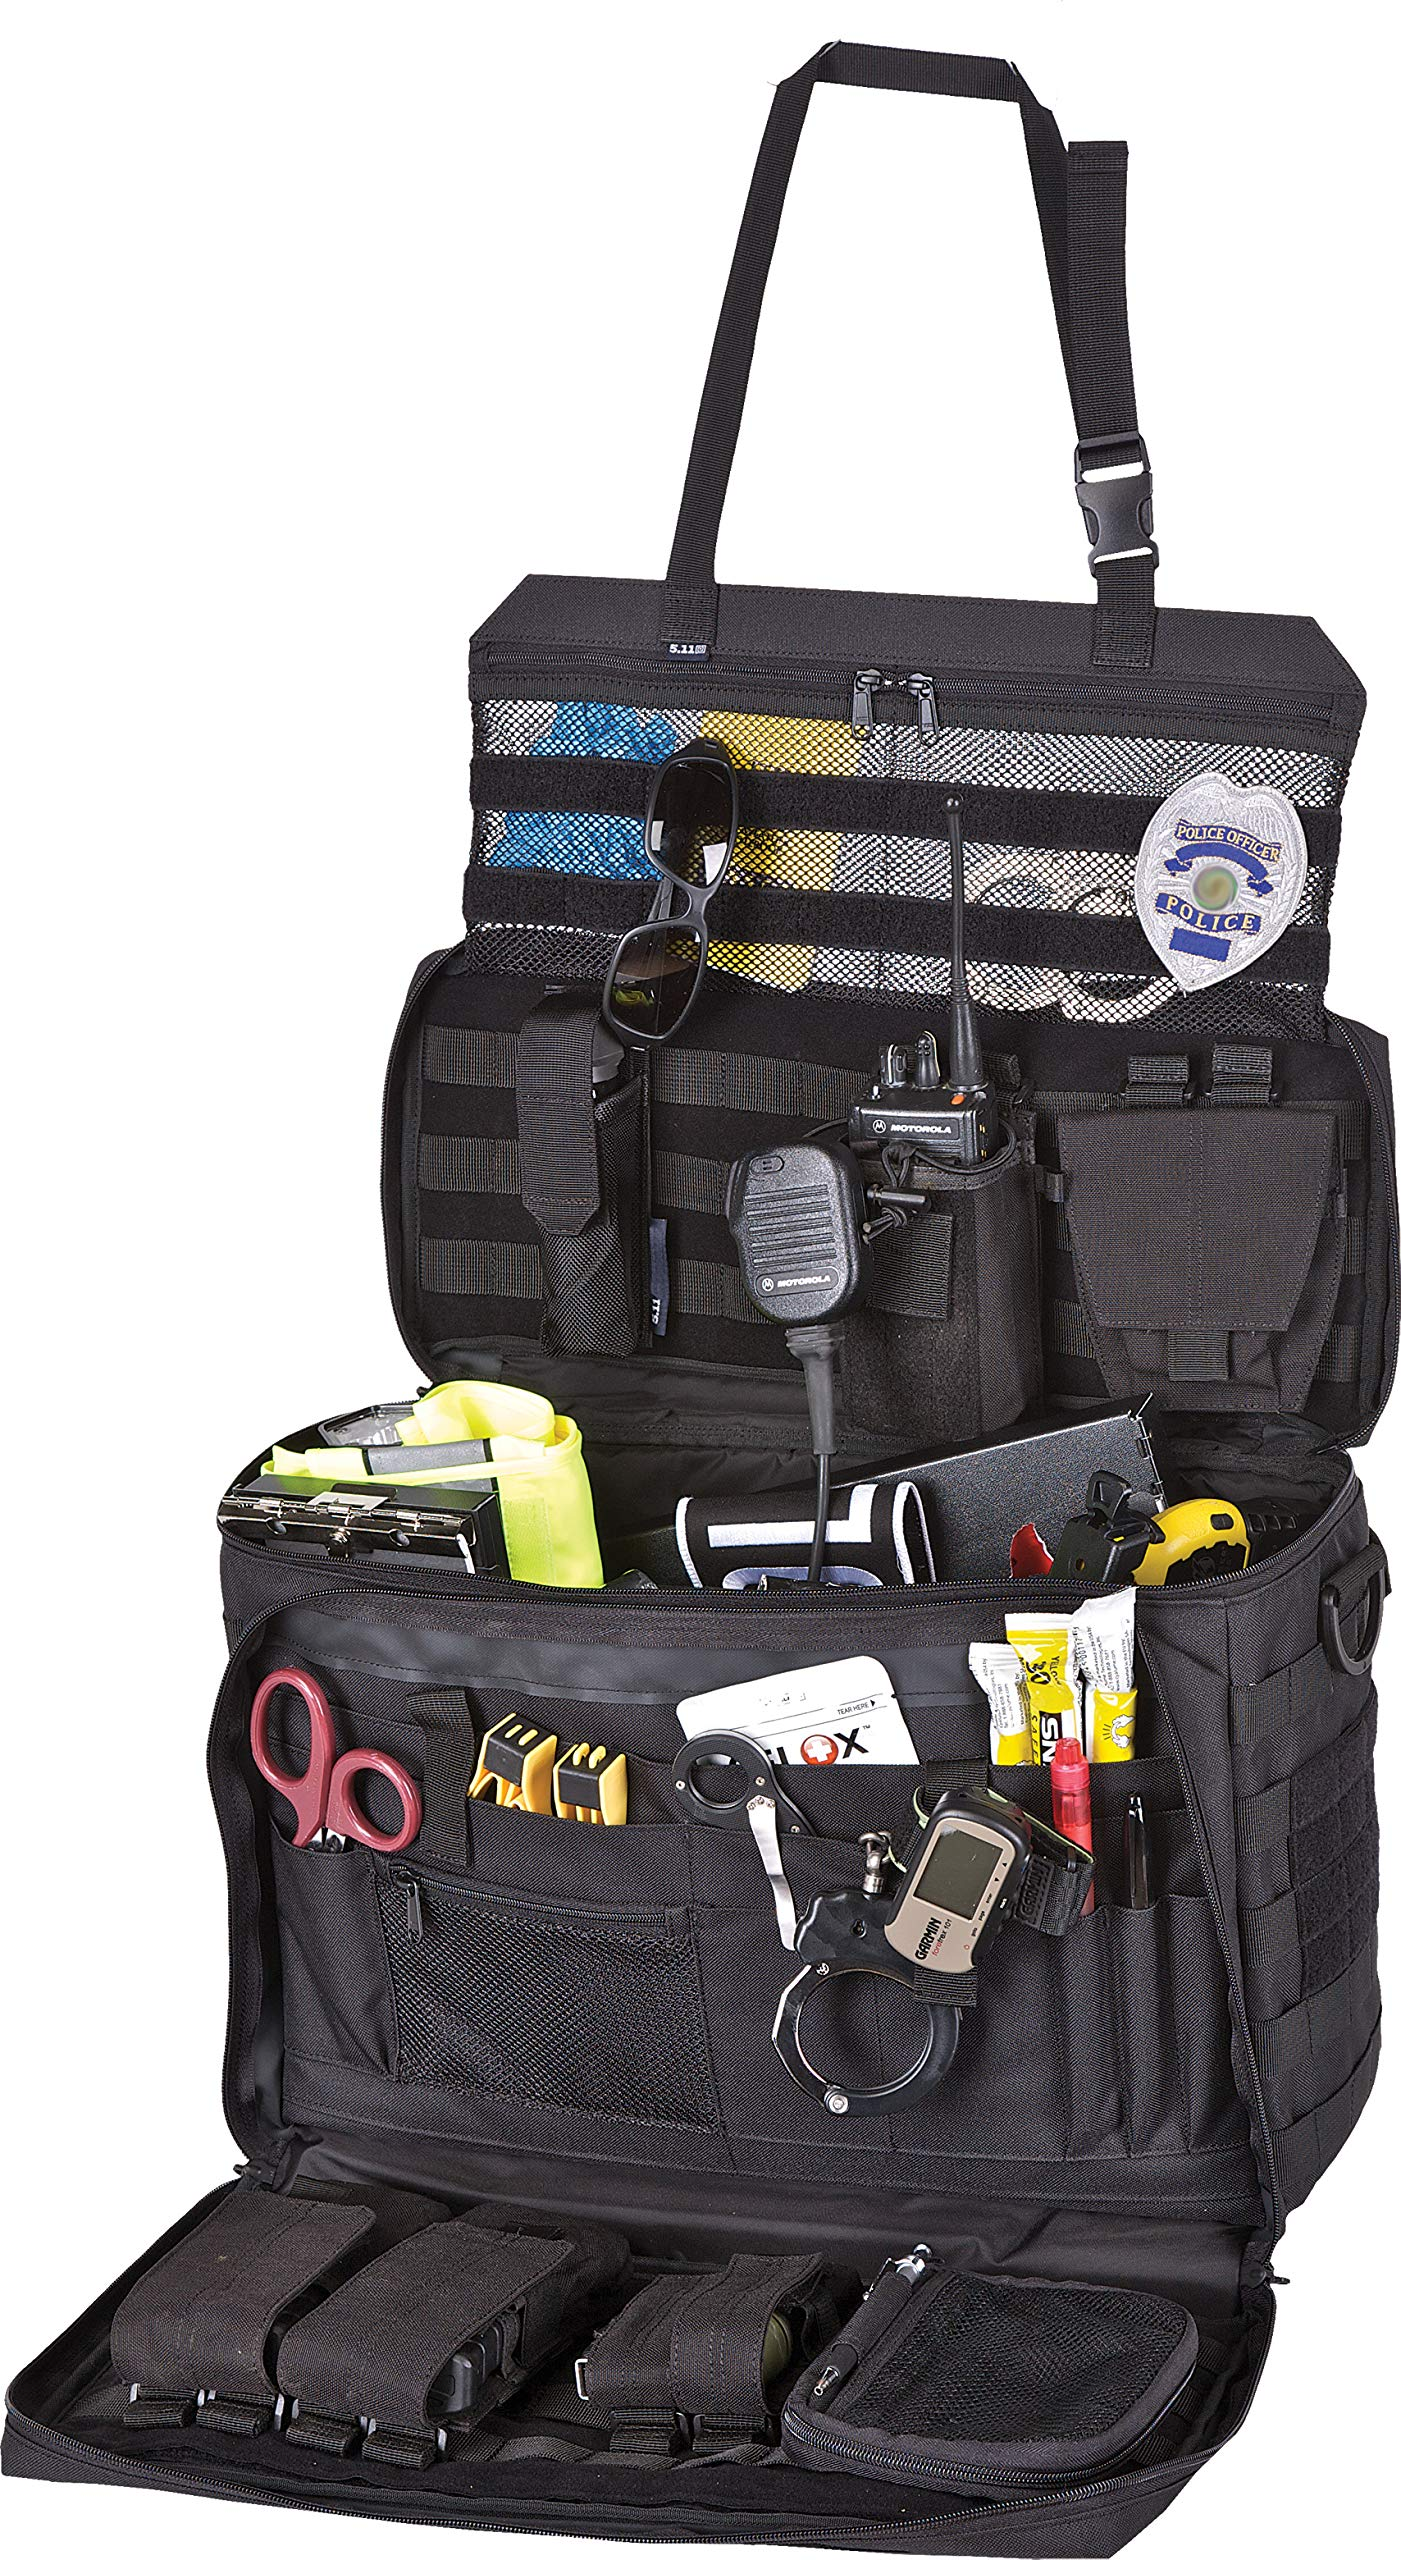 5.11 Wingman Patrol Bag for Law Enforcement Police Vehicle Passenger Seat, Style 56045 by 5.11